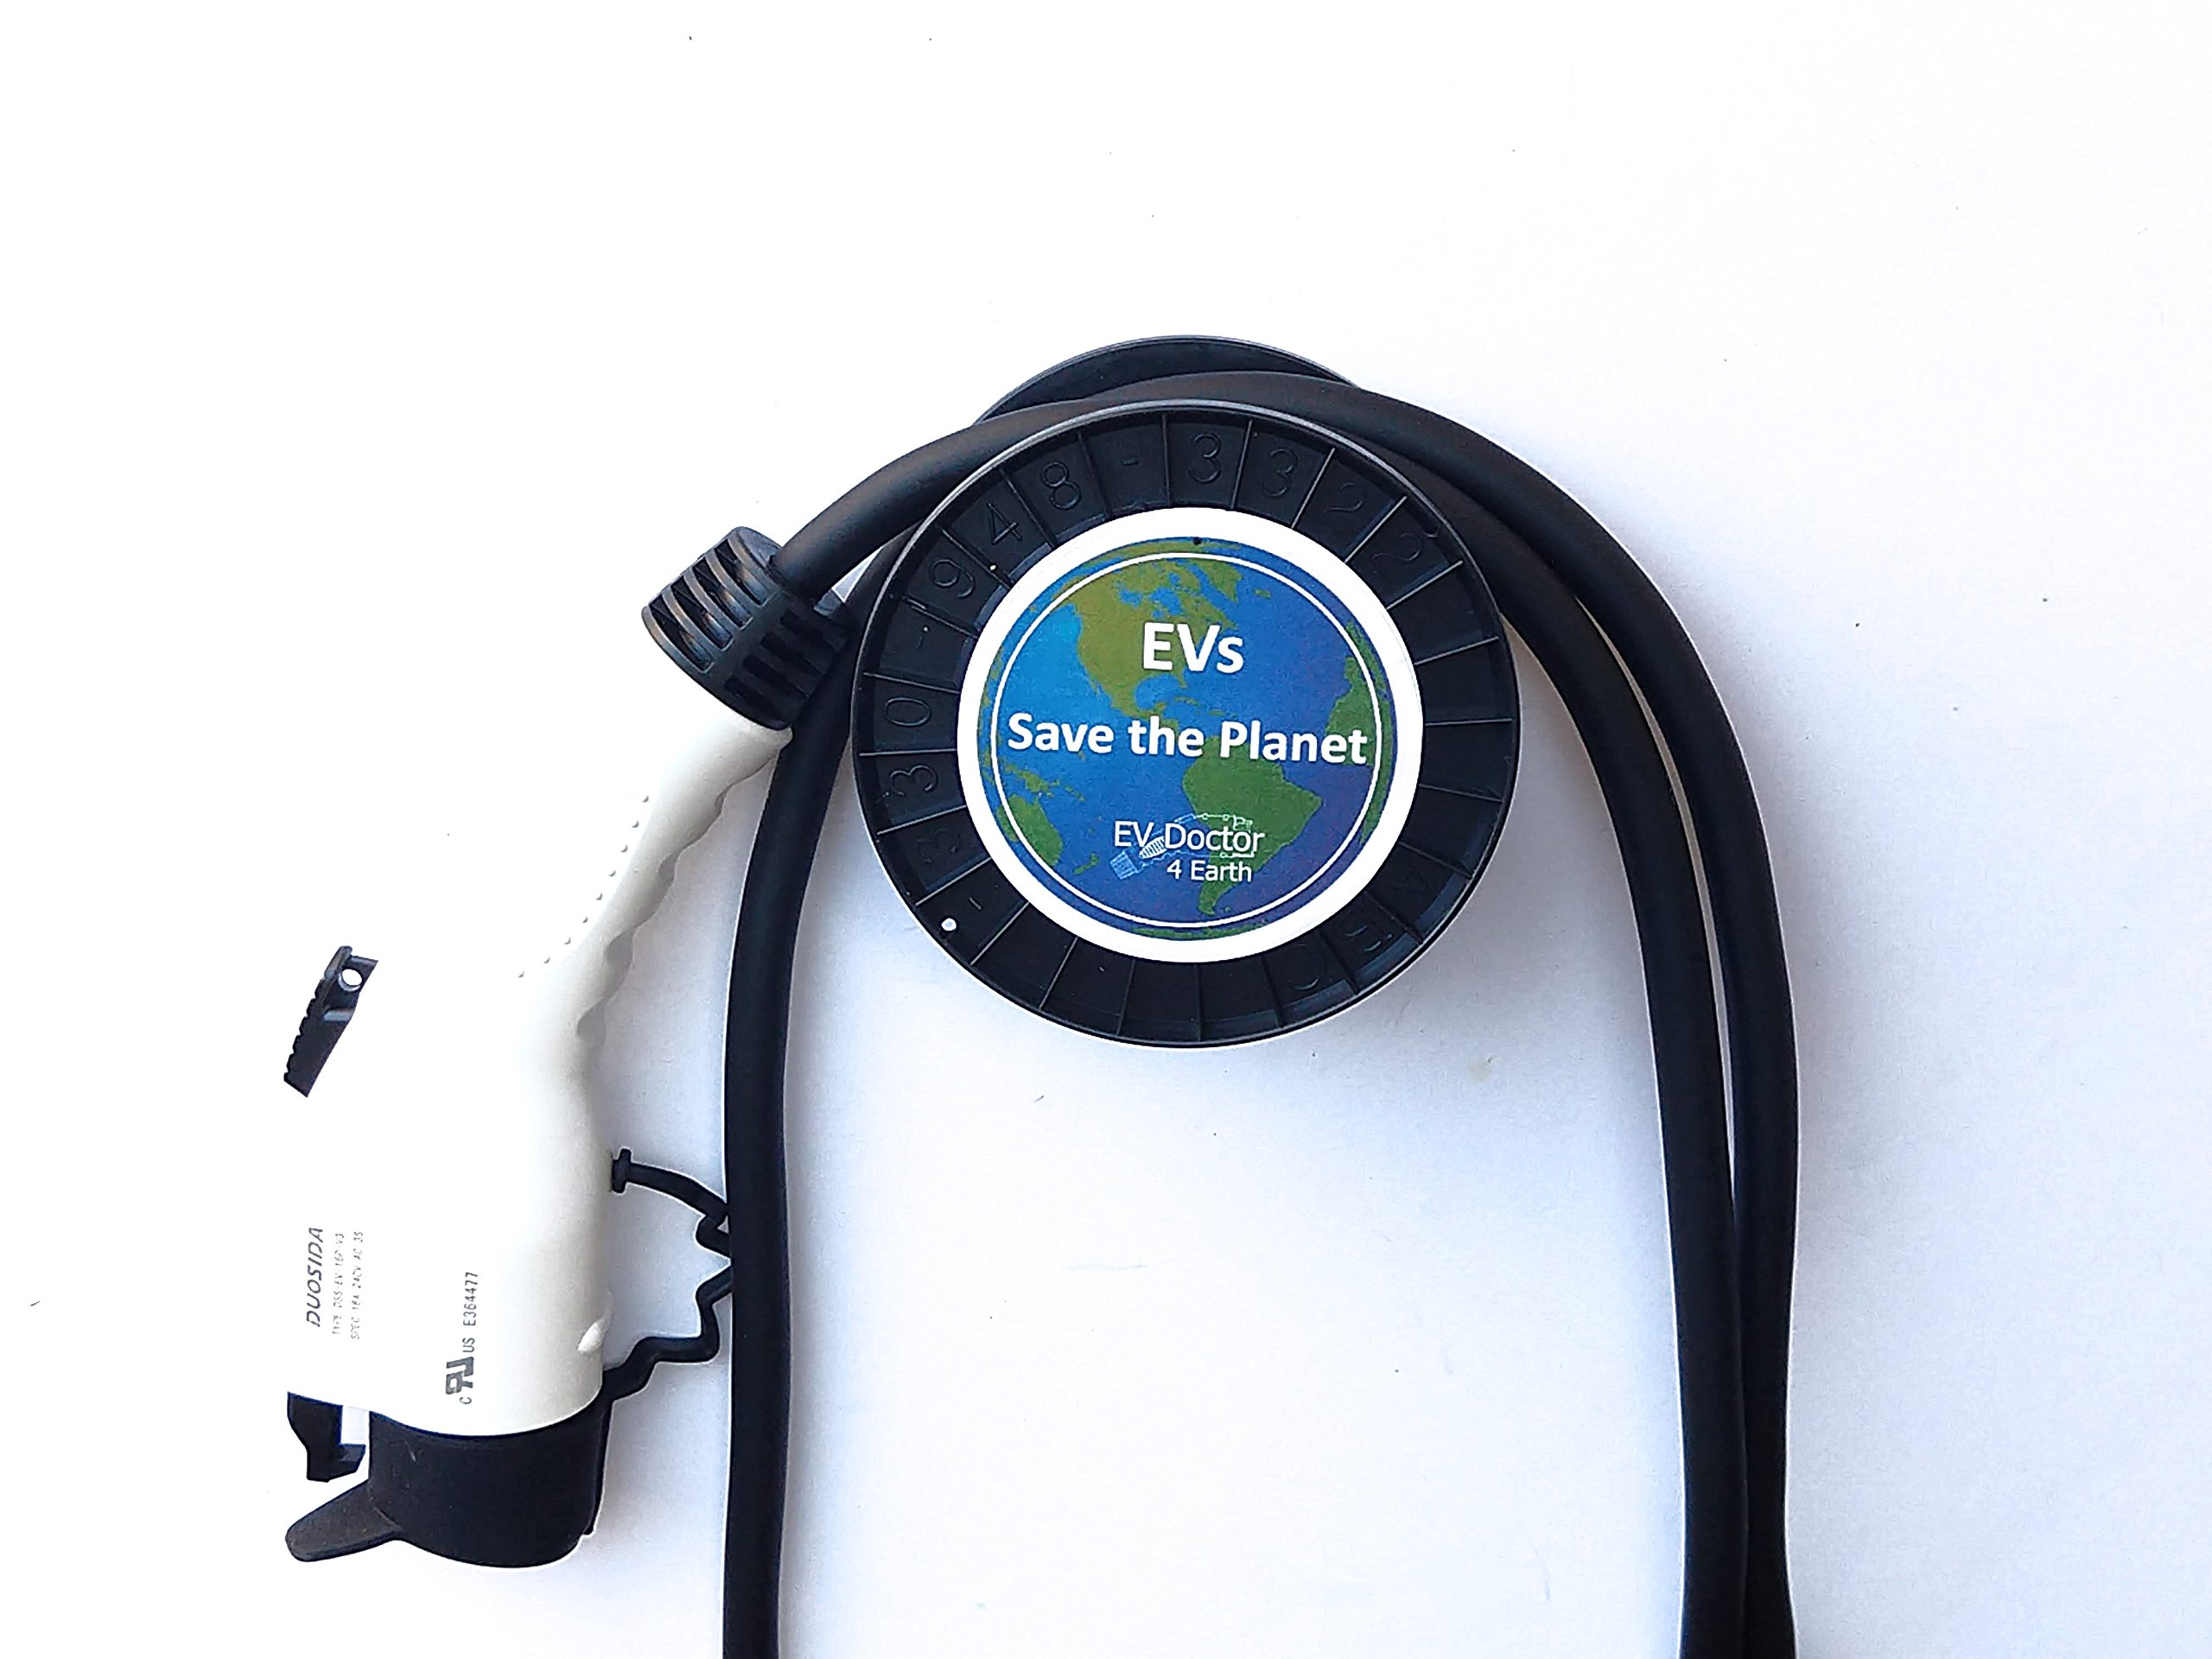 EVDoctor The 1 Original EV-Cable-Hanger protects the cable and J1772 handle of Level 1 and Level 2 Electric Vehicle Car Chargers (EVSE). Bonus items: Rain Bonnet and EVs Save the Planet Sticker